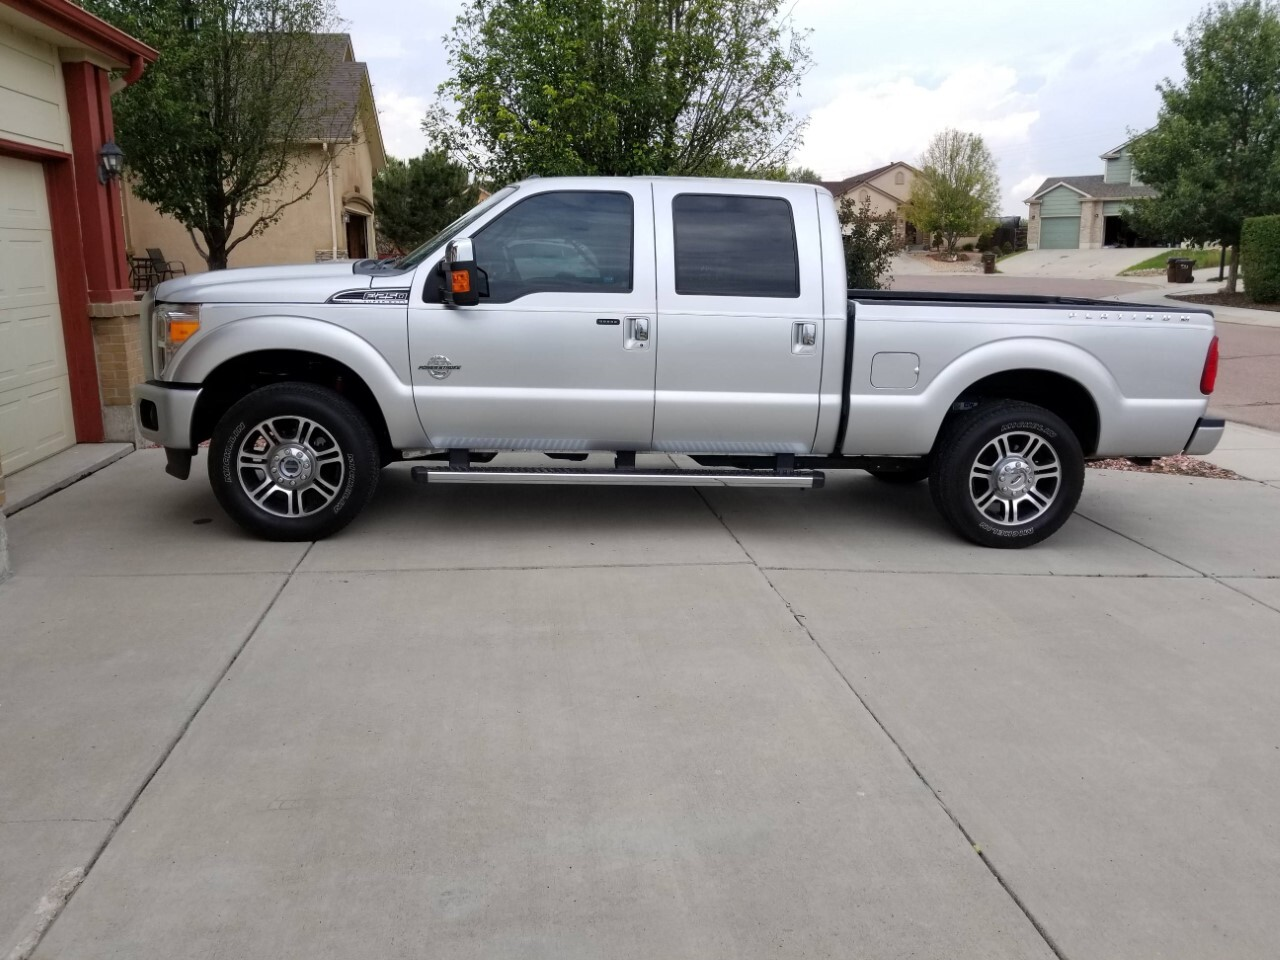 Stolen Ford F250